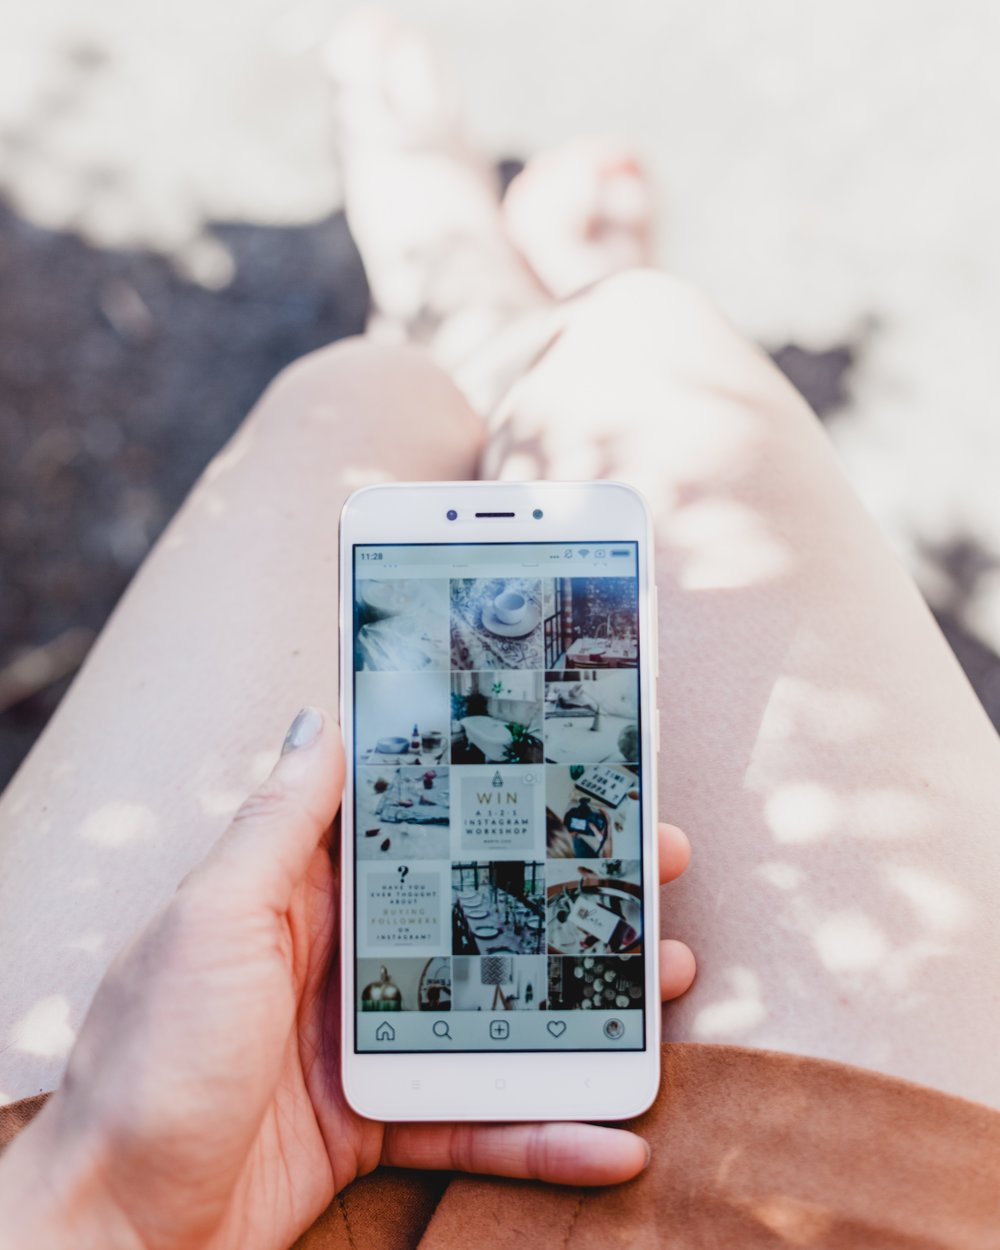 Instagram users are reporting the same bizarre hack - Krista, an Instagram user with more than 4,500 followers on her fitness account, noticed something strange on Saturday evening: she had been logged out of her account. (Mashable)